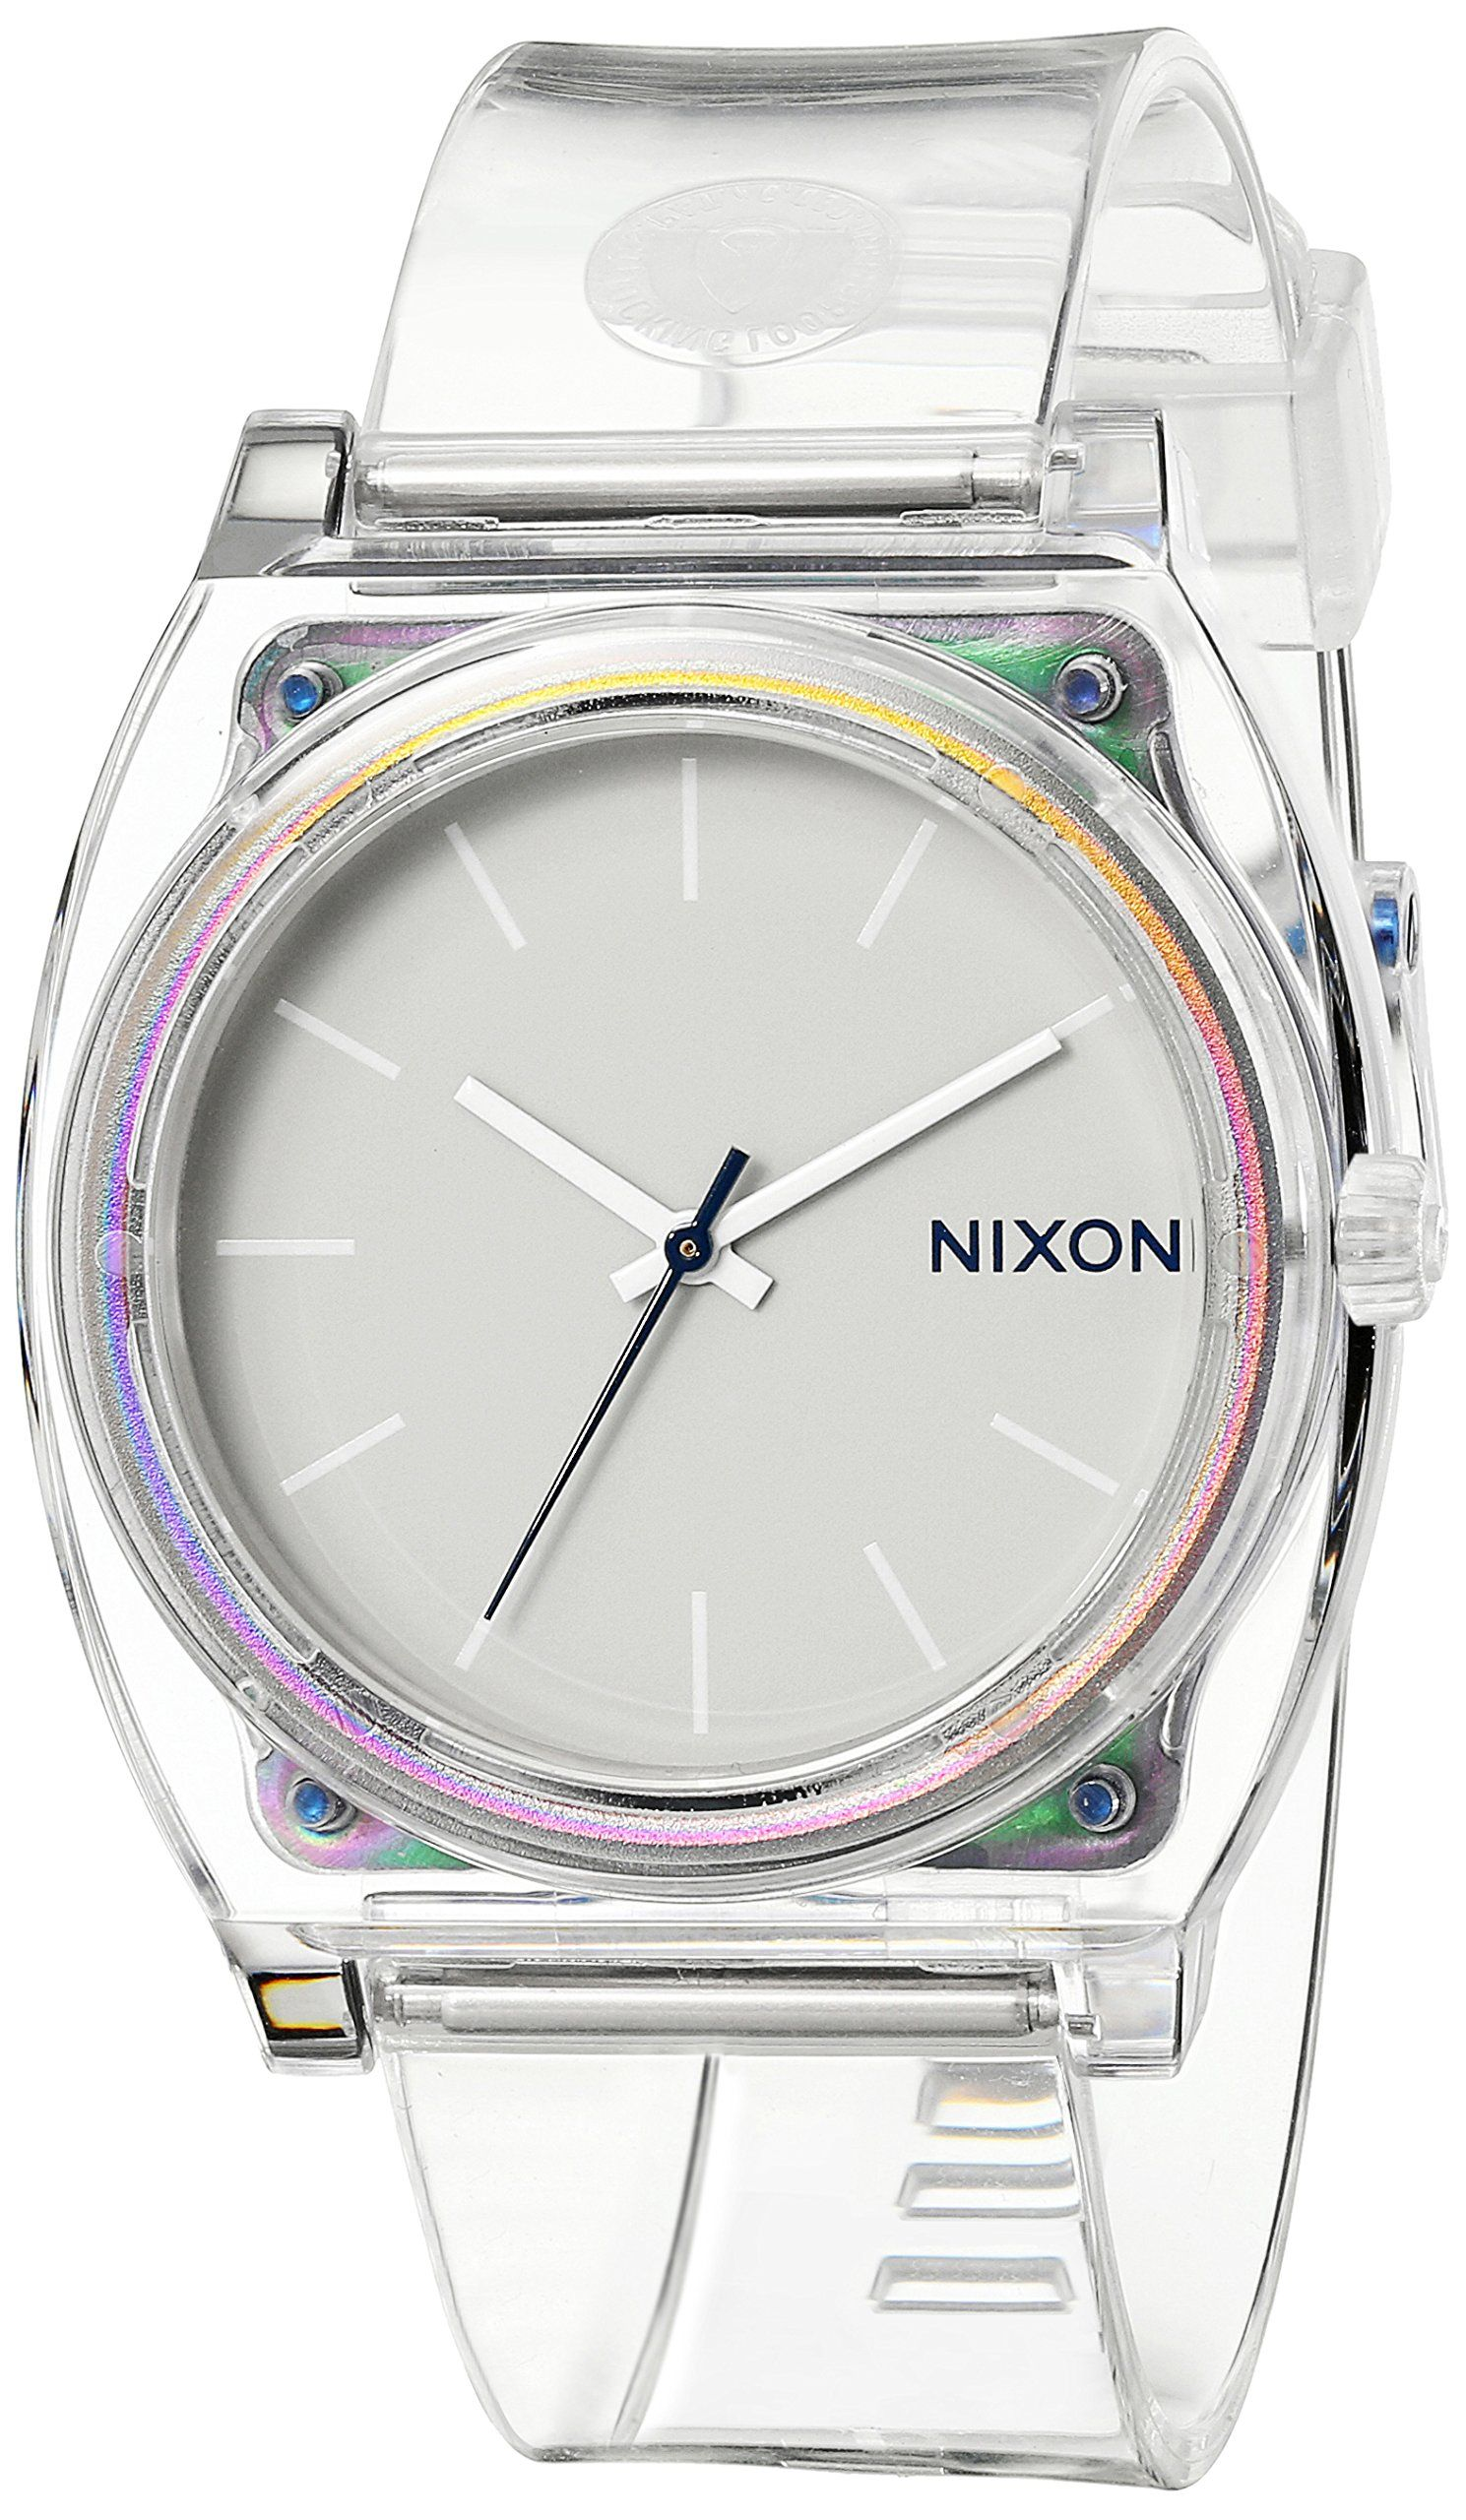 beee942d3dd8  52 Amazon.com  Nixon Time Teller P Translucent Dial Translucent  Polyurethane Ladies Watch A1191779  Nixon  Clothing